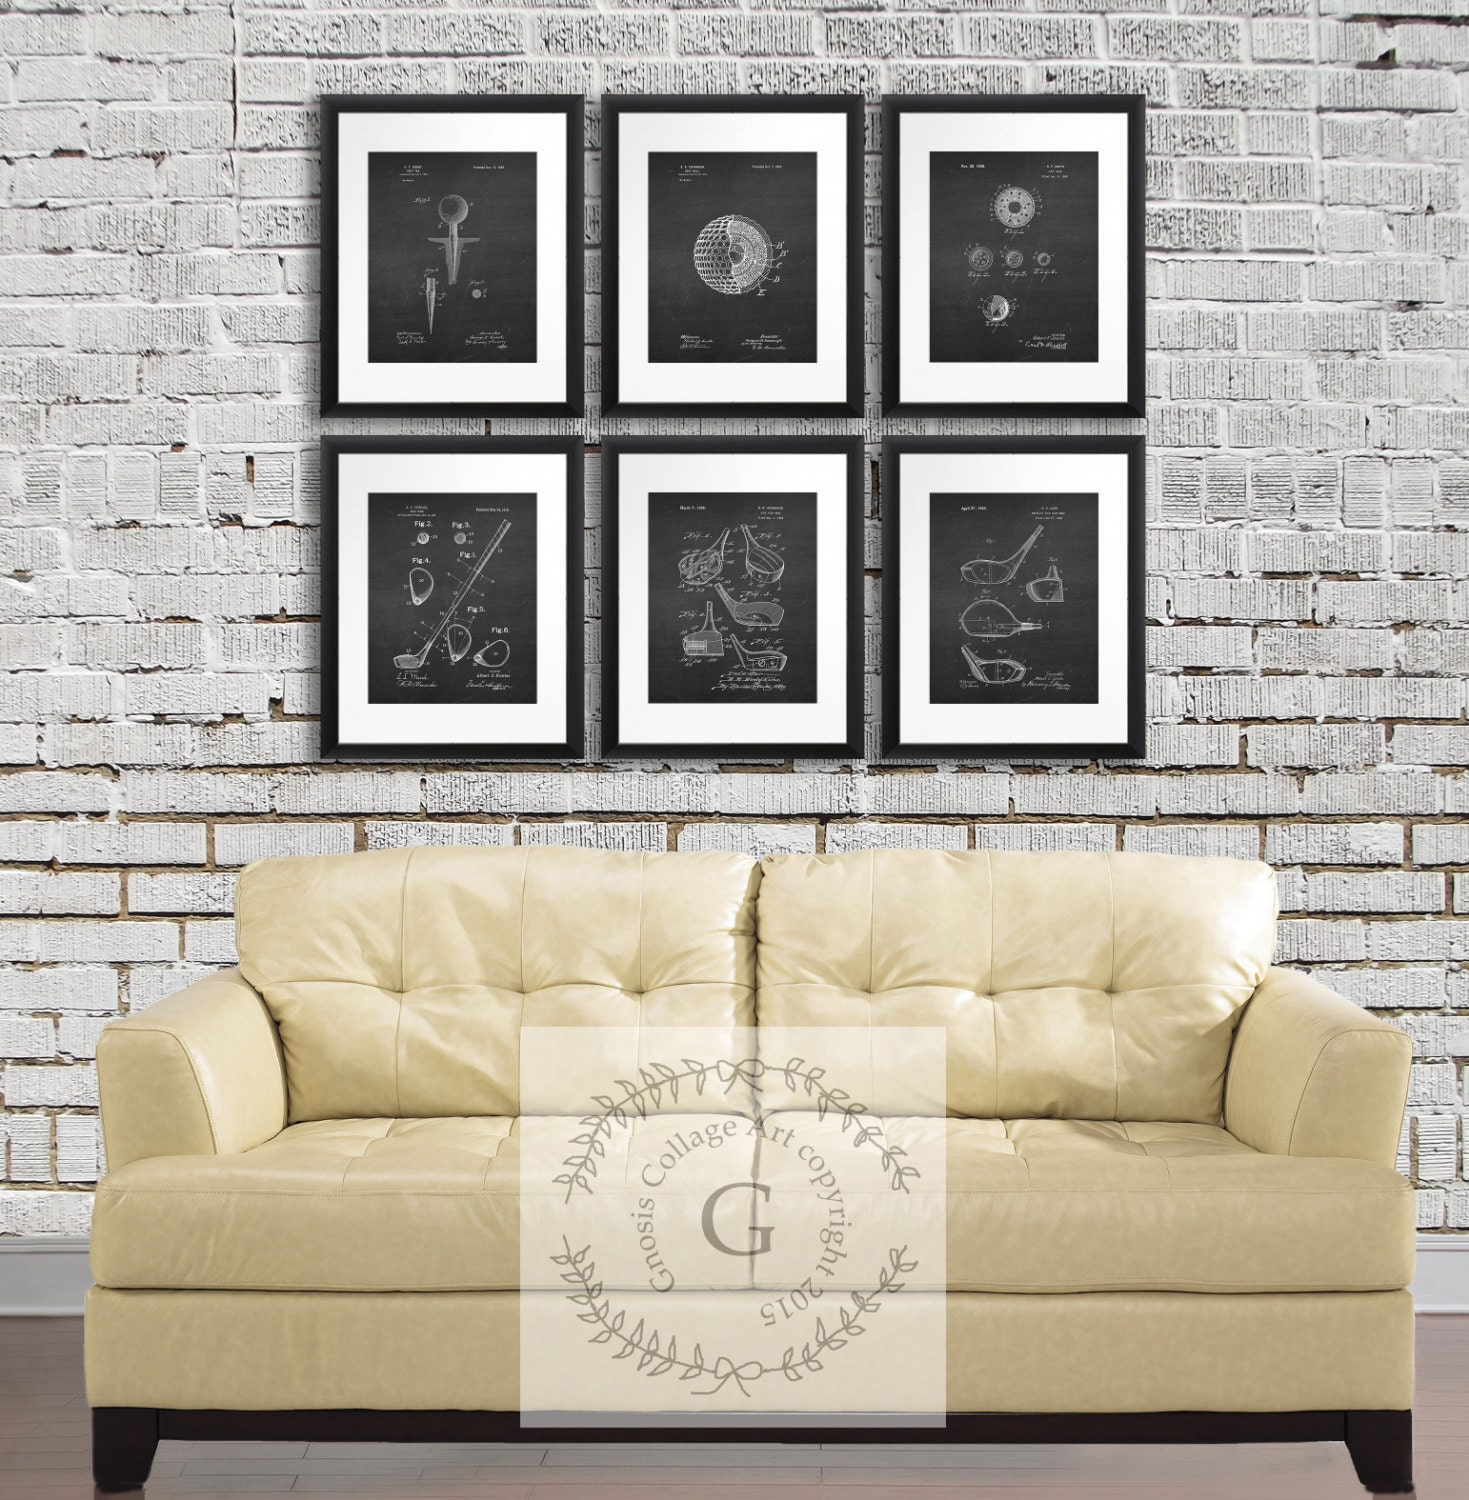 Office Pictures For Walls Golf: Golf Home Decor Golf Art Prints Golf Wall Decor Set Of 6